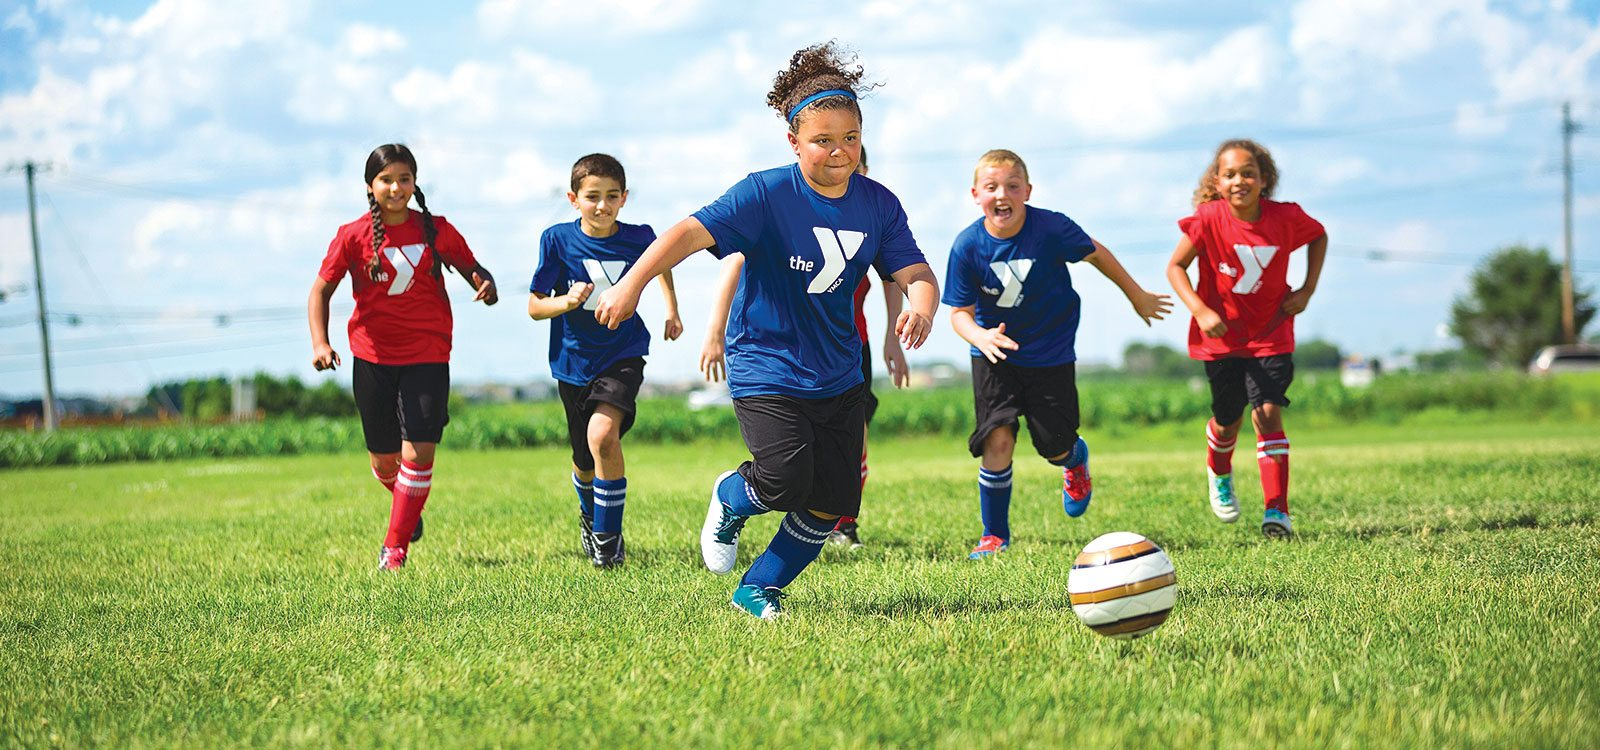 programs & activities | ymca of greater indianapolis